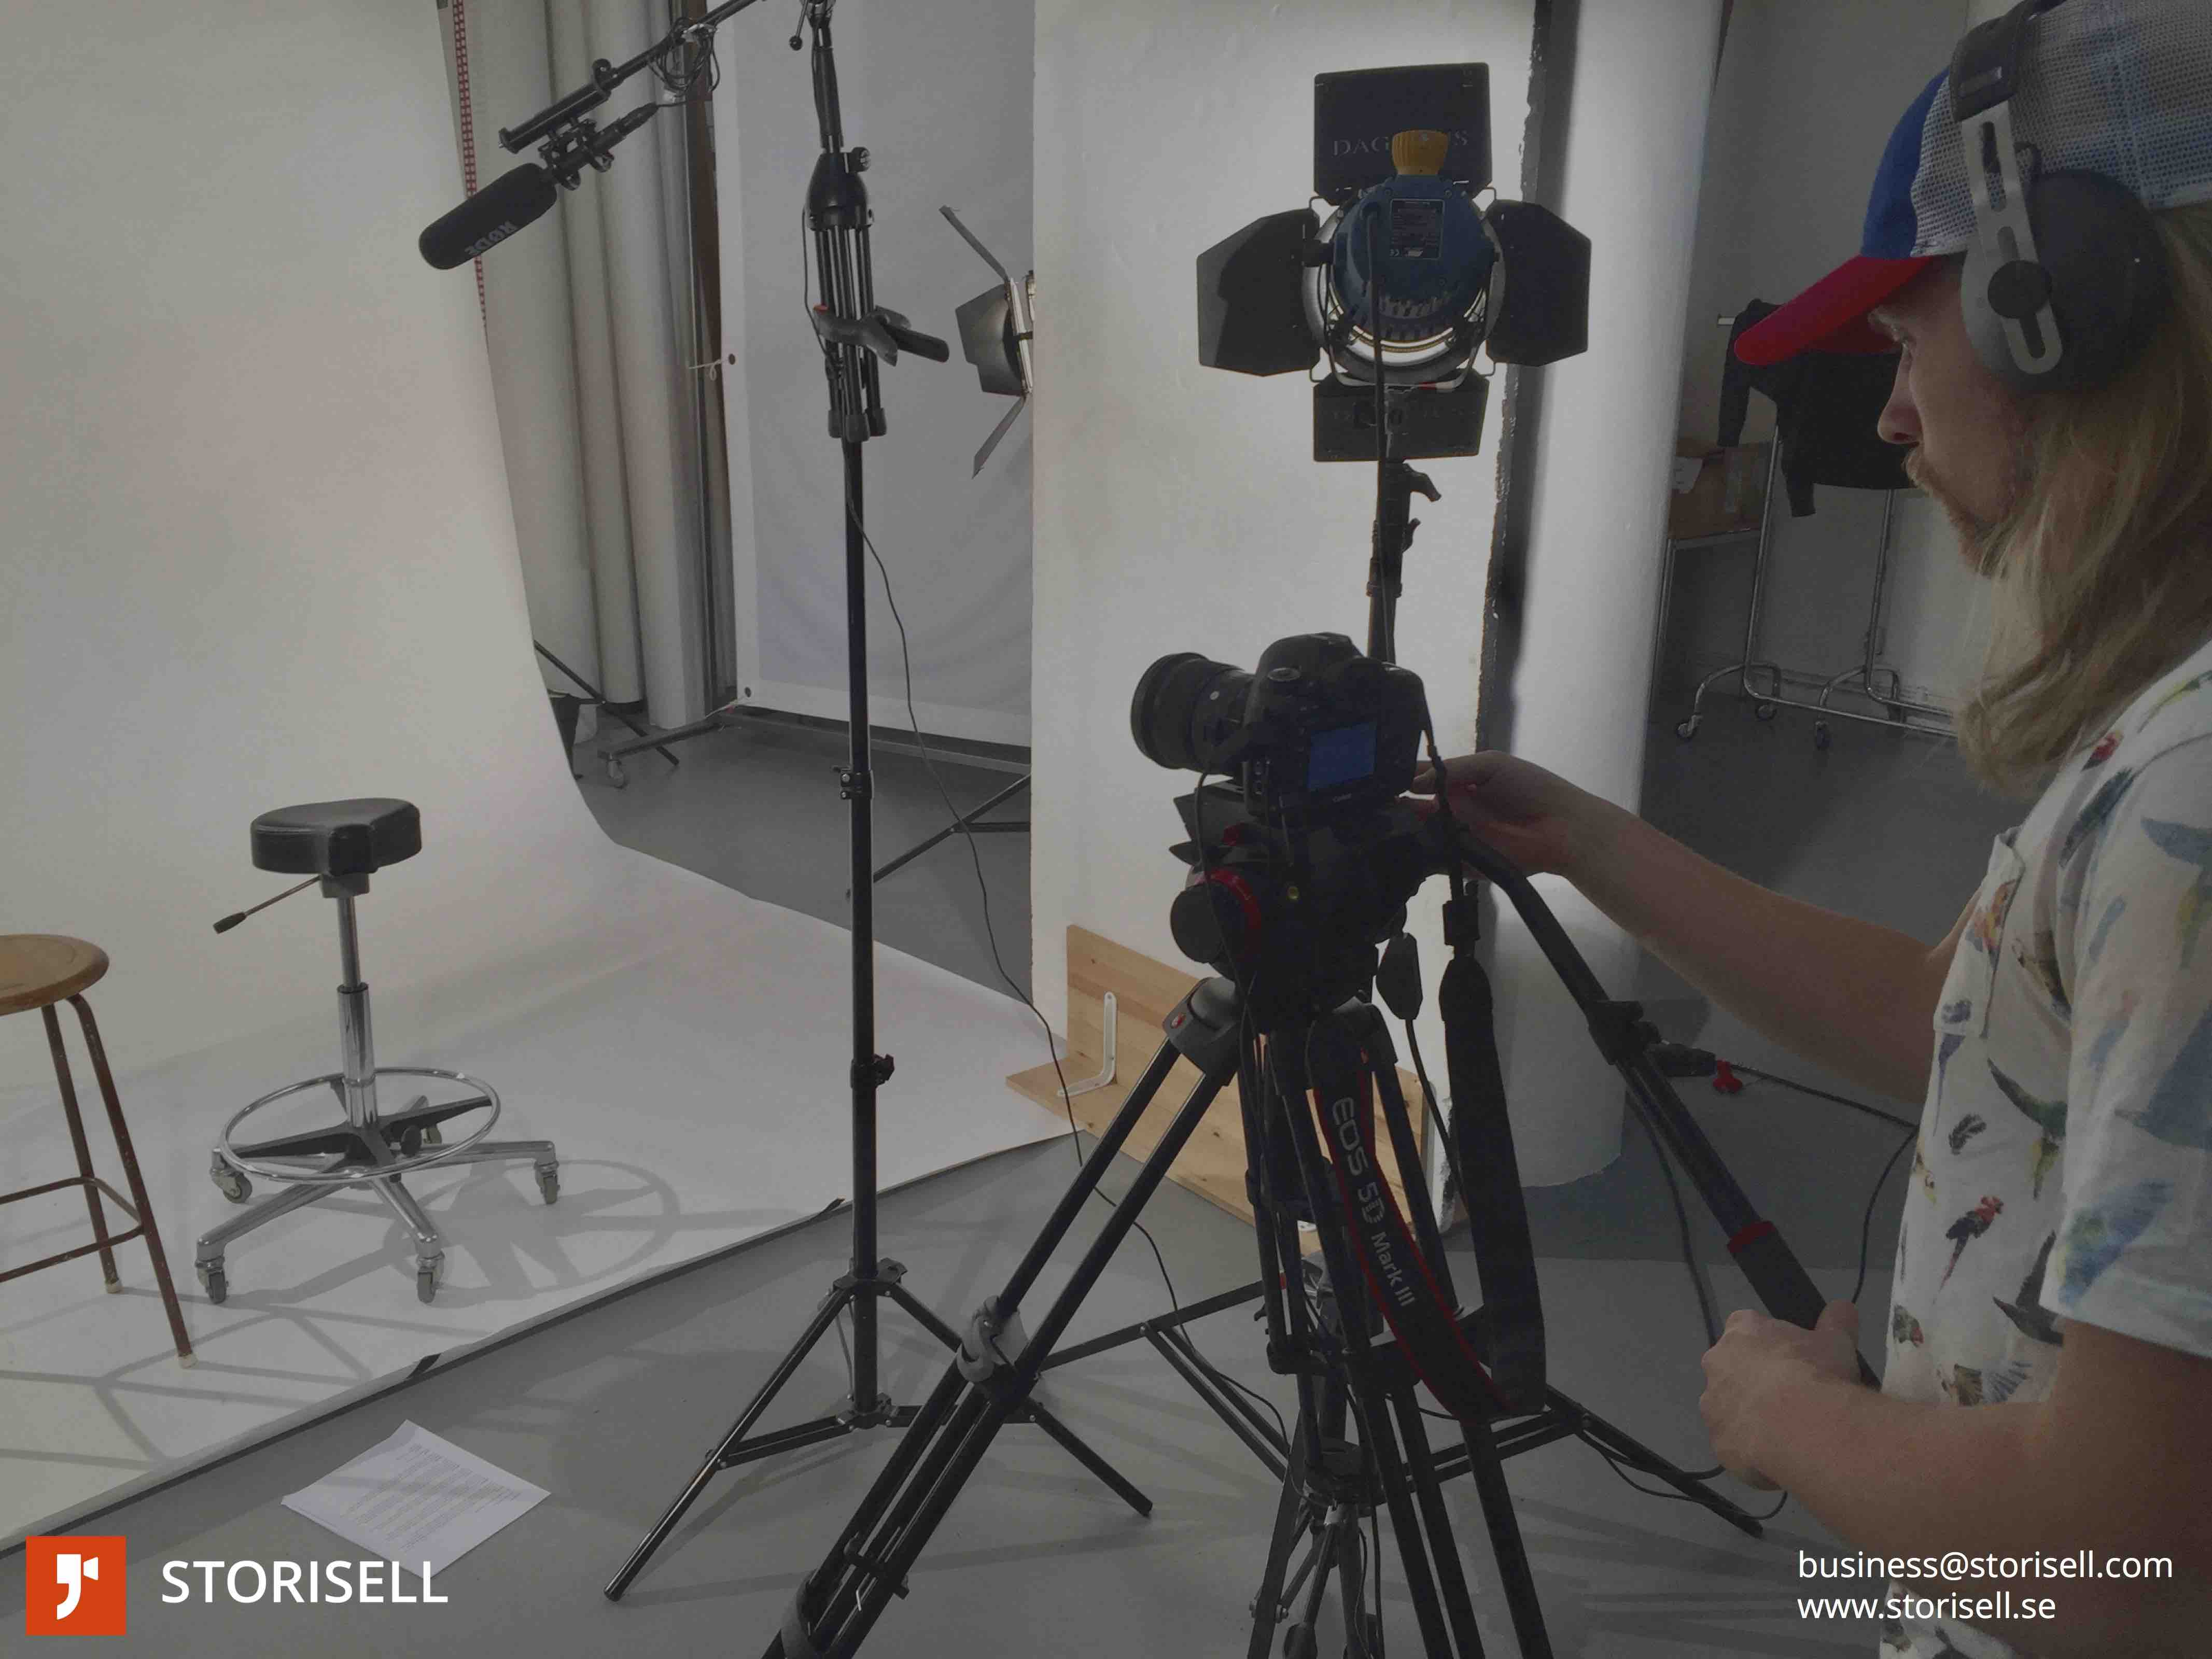 Storisell behind the scenes in upcoming product launch